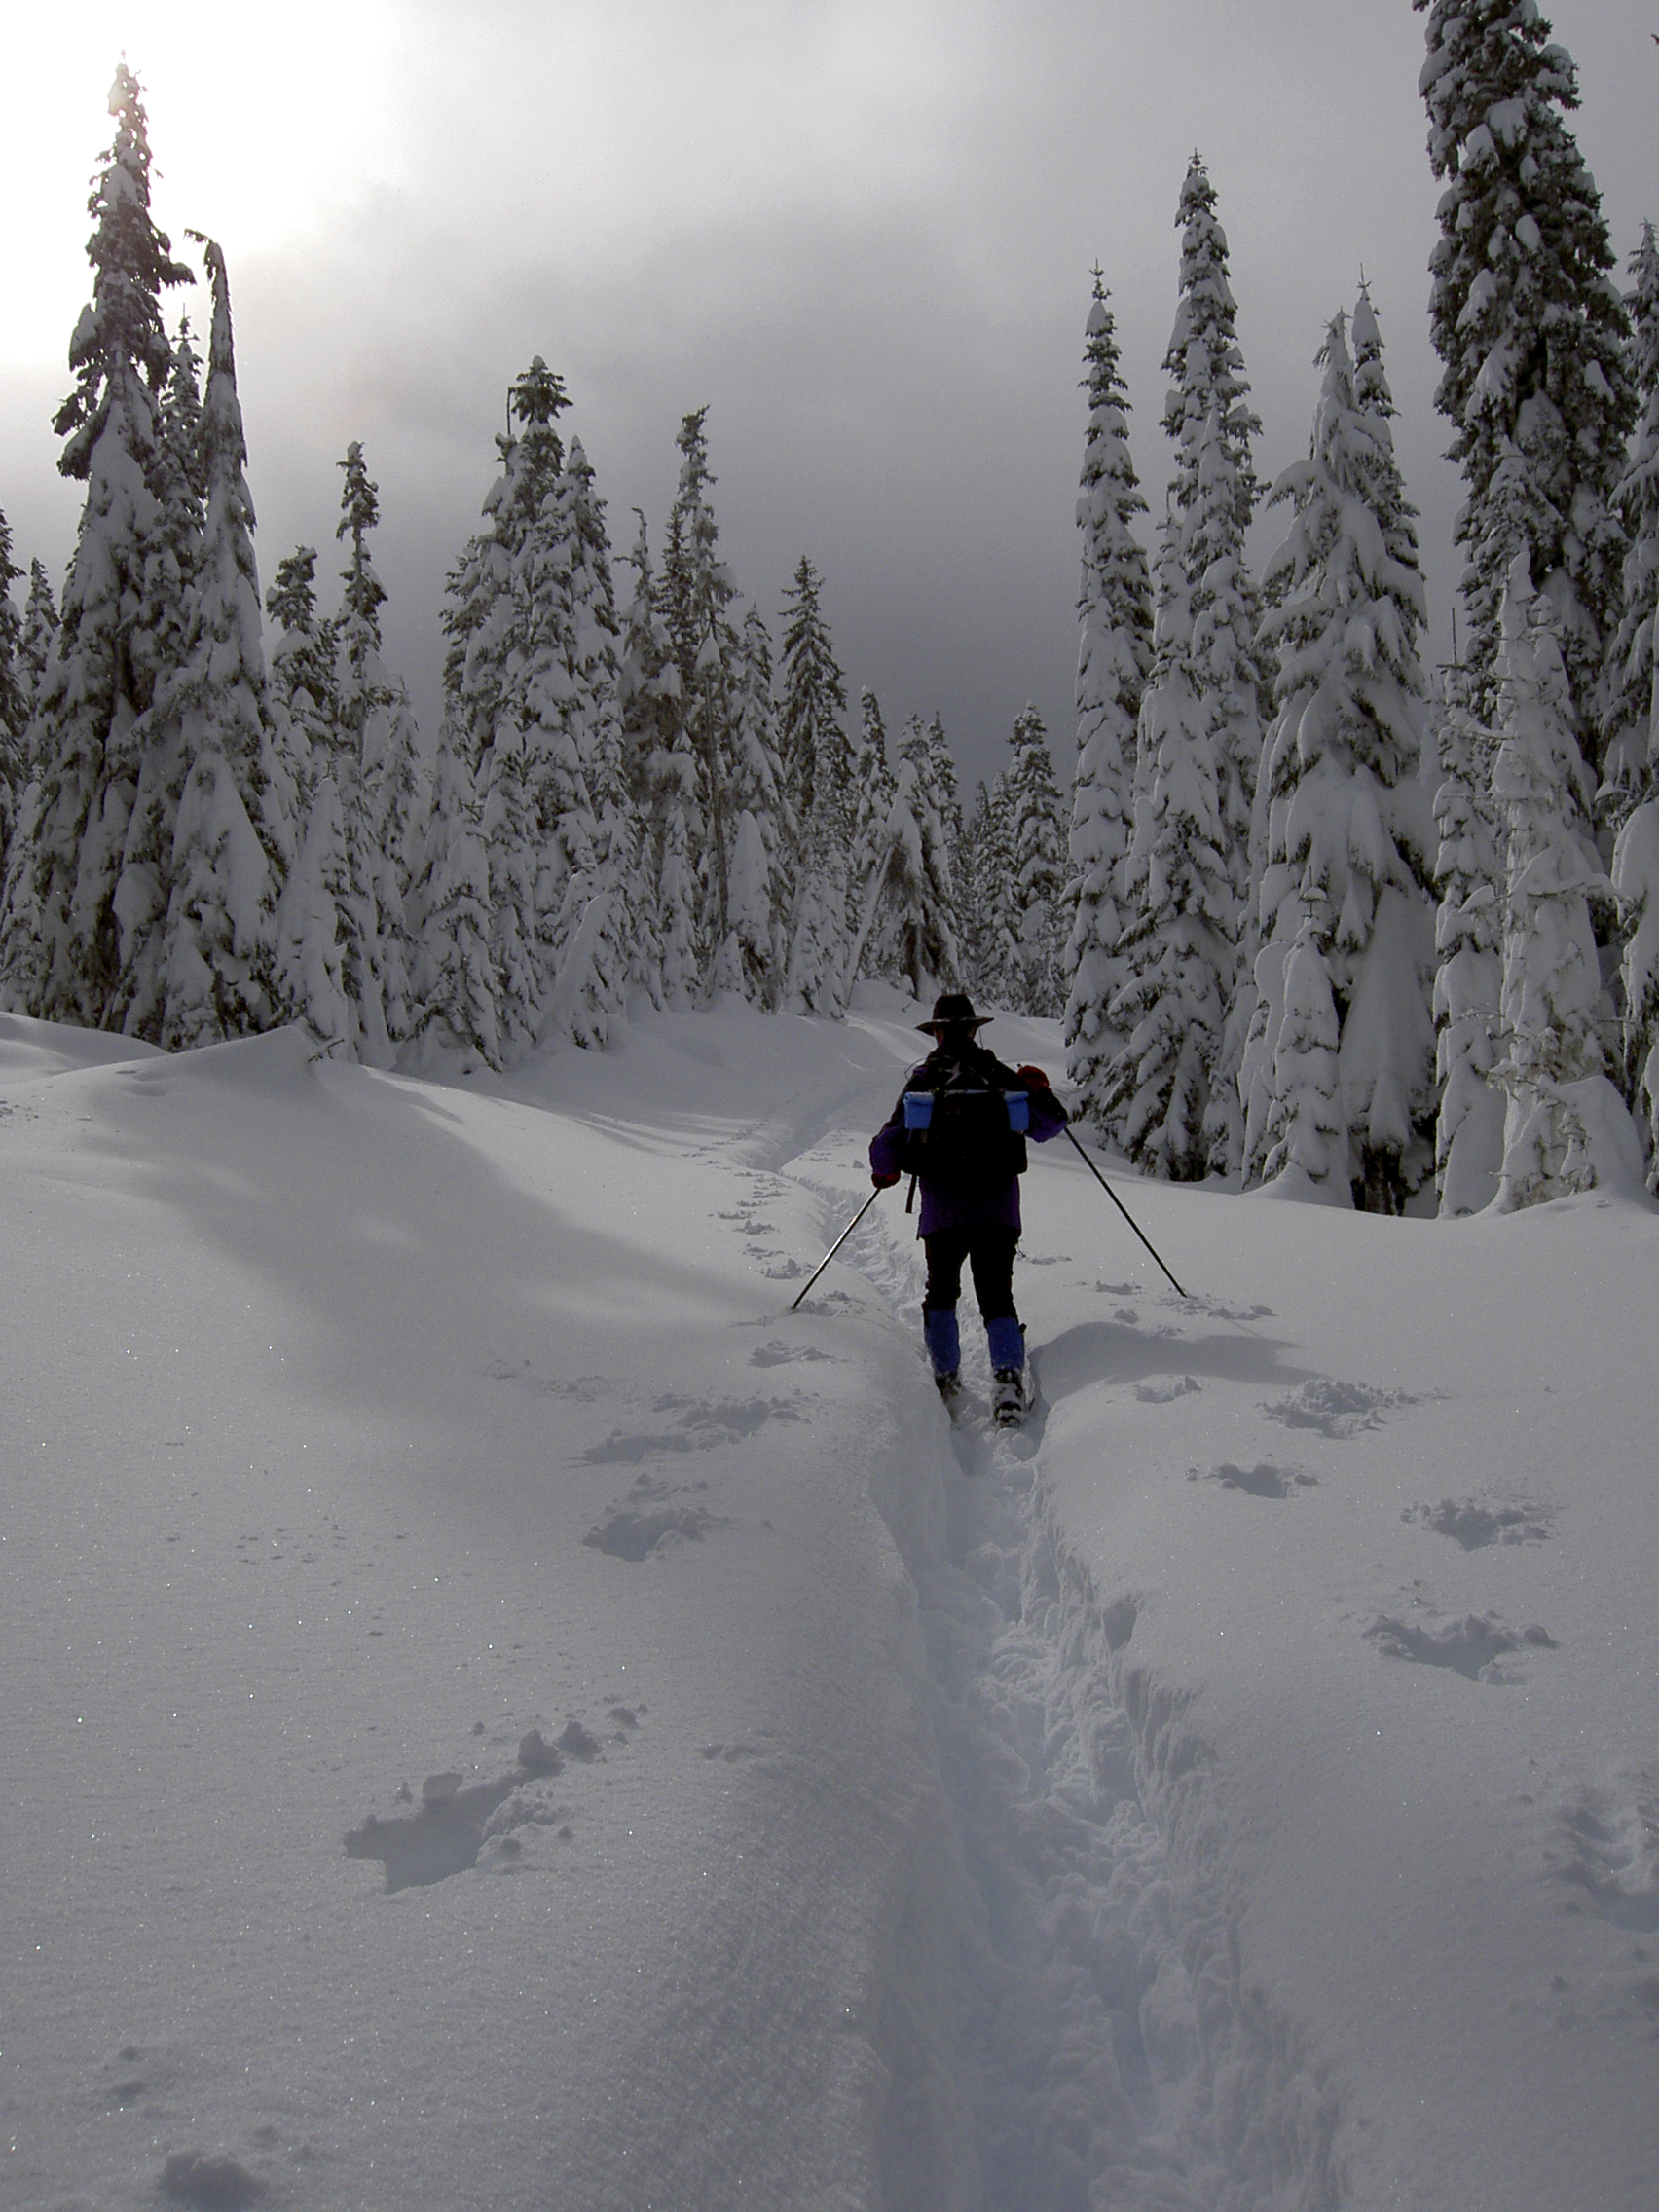 A person on snowshoes travels a path through deep snow surrounded by snow covered trees